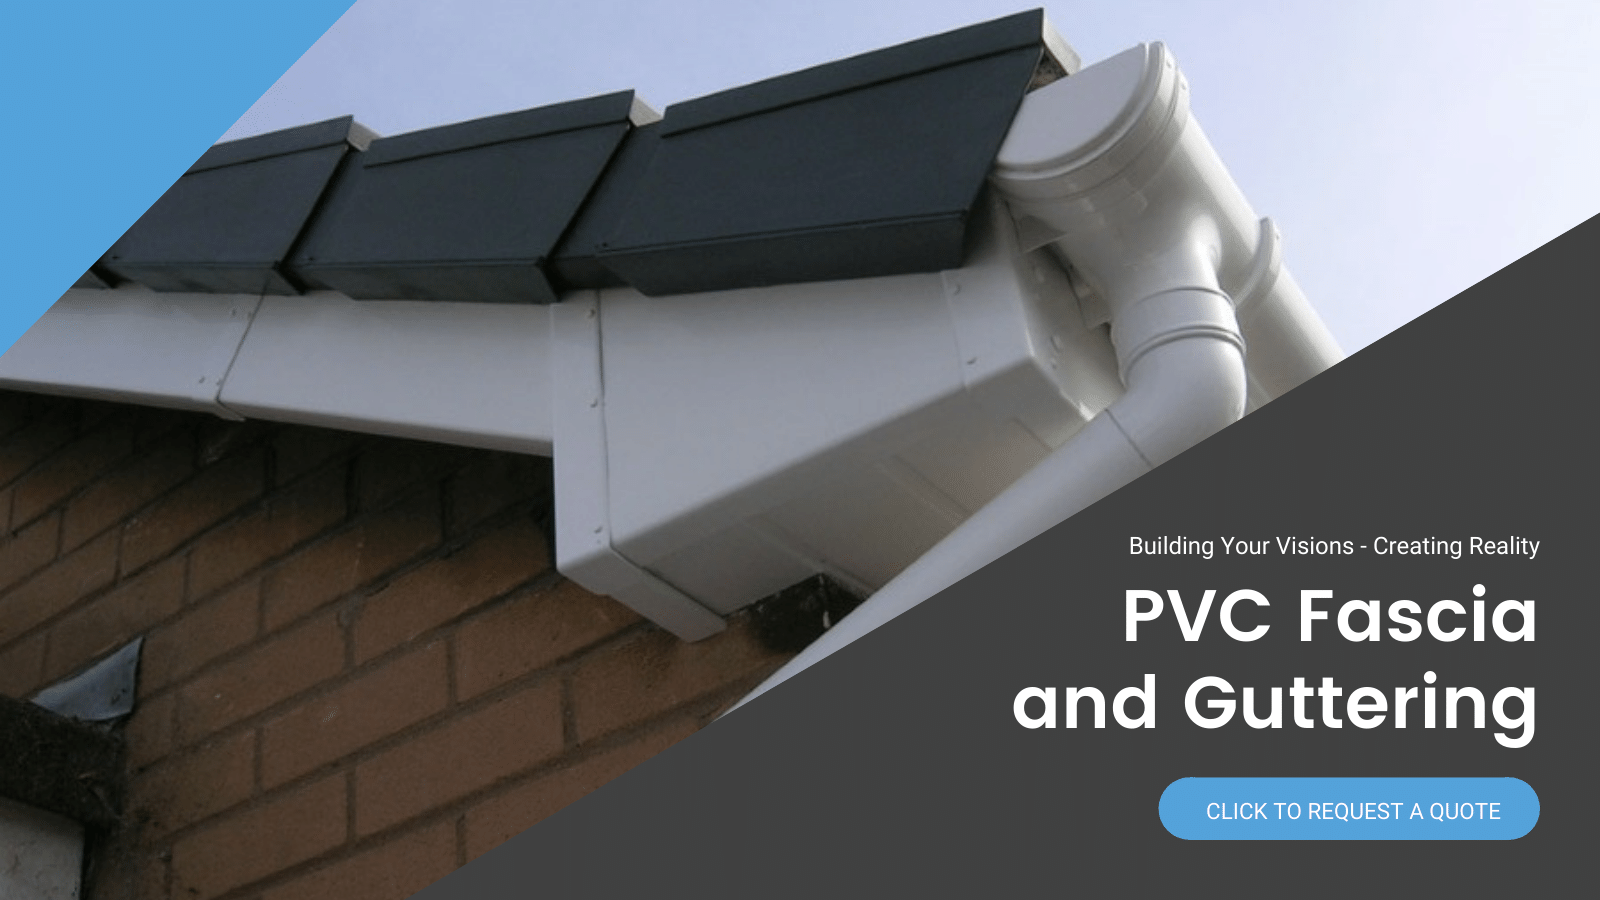 PVC Fascia and Guttering